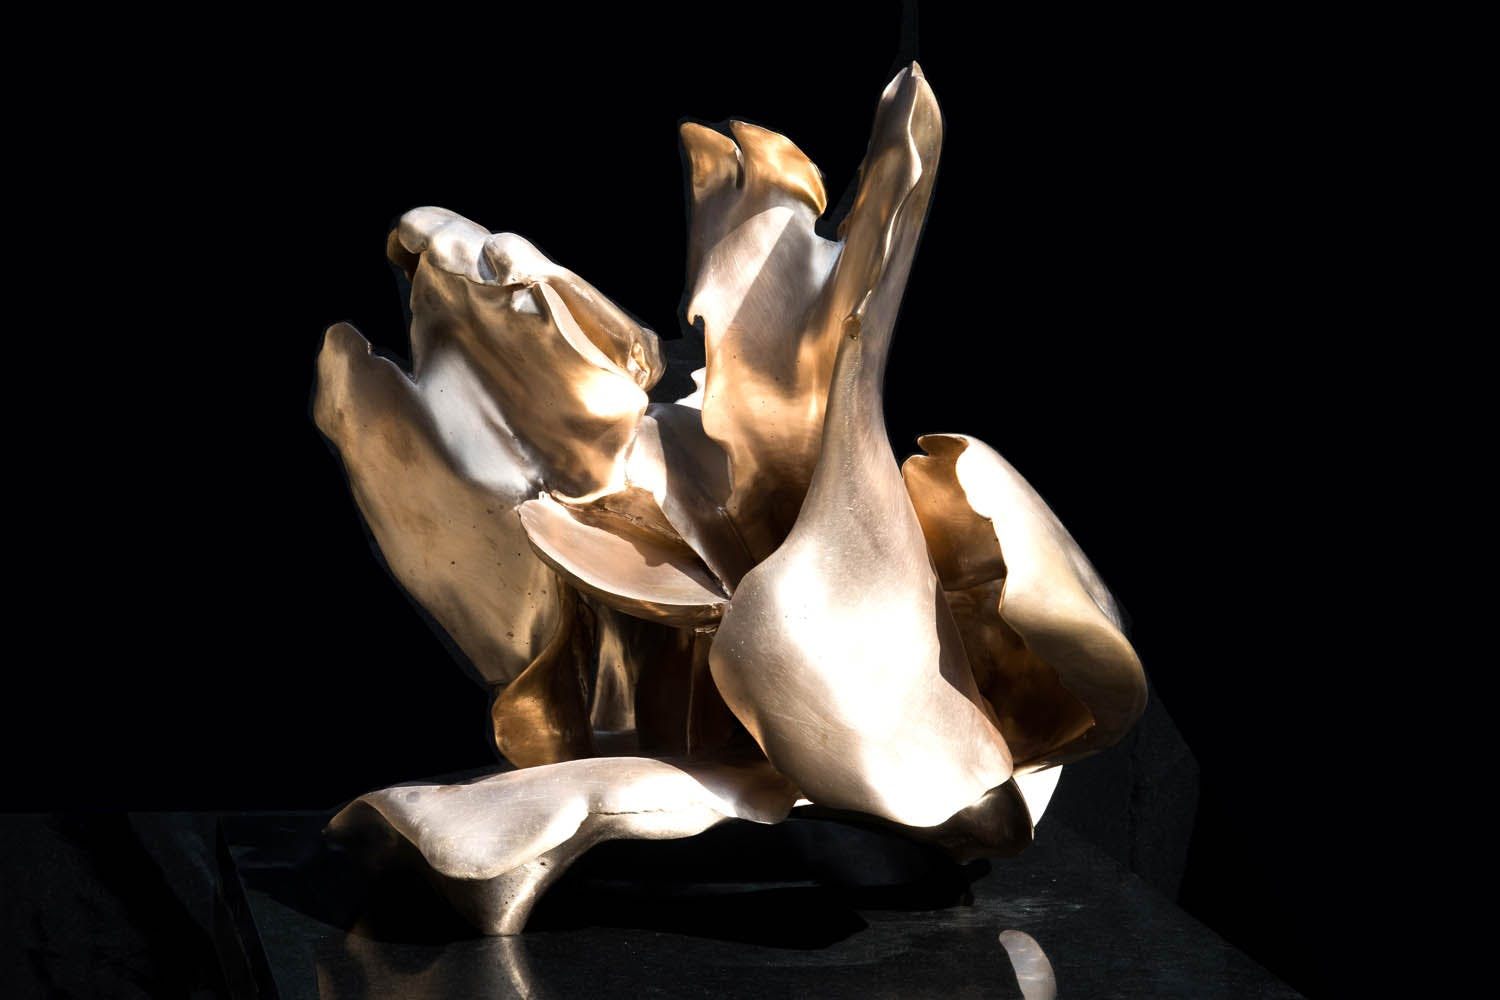 Helaine Blumenfeld: Grounded in the Working of Raw Materials